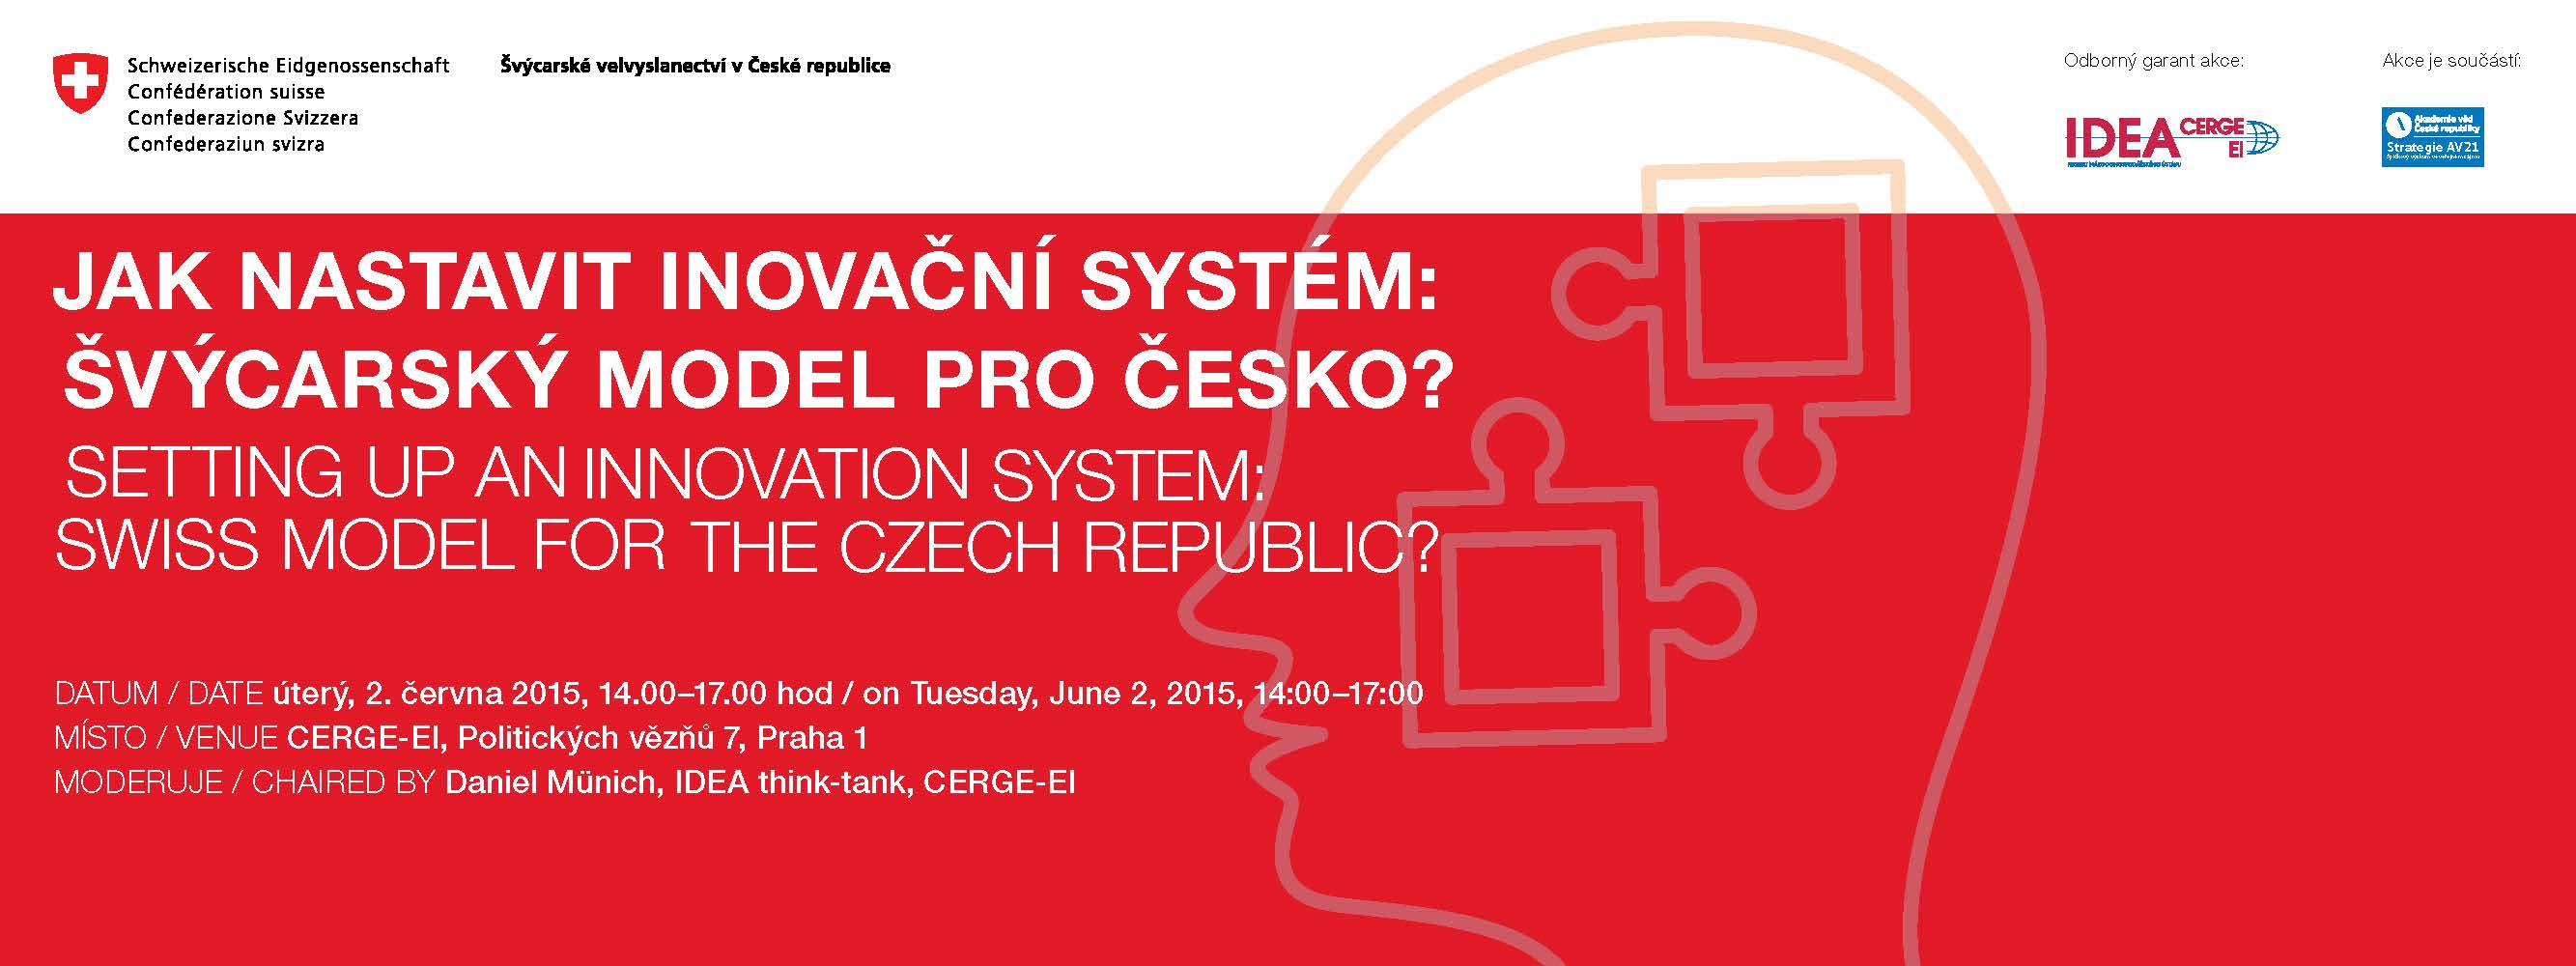 Setting Up an Innovation System: Swiss Model for the Czech Republic?